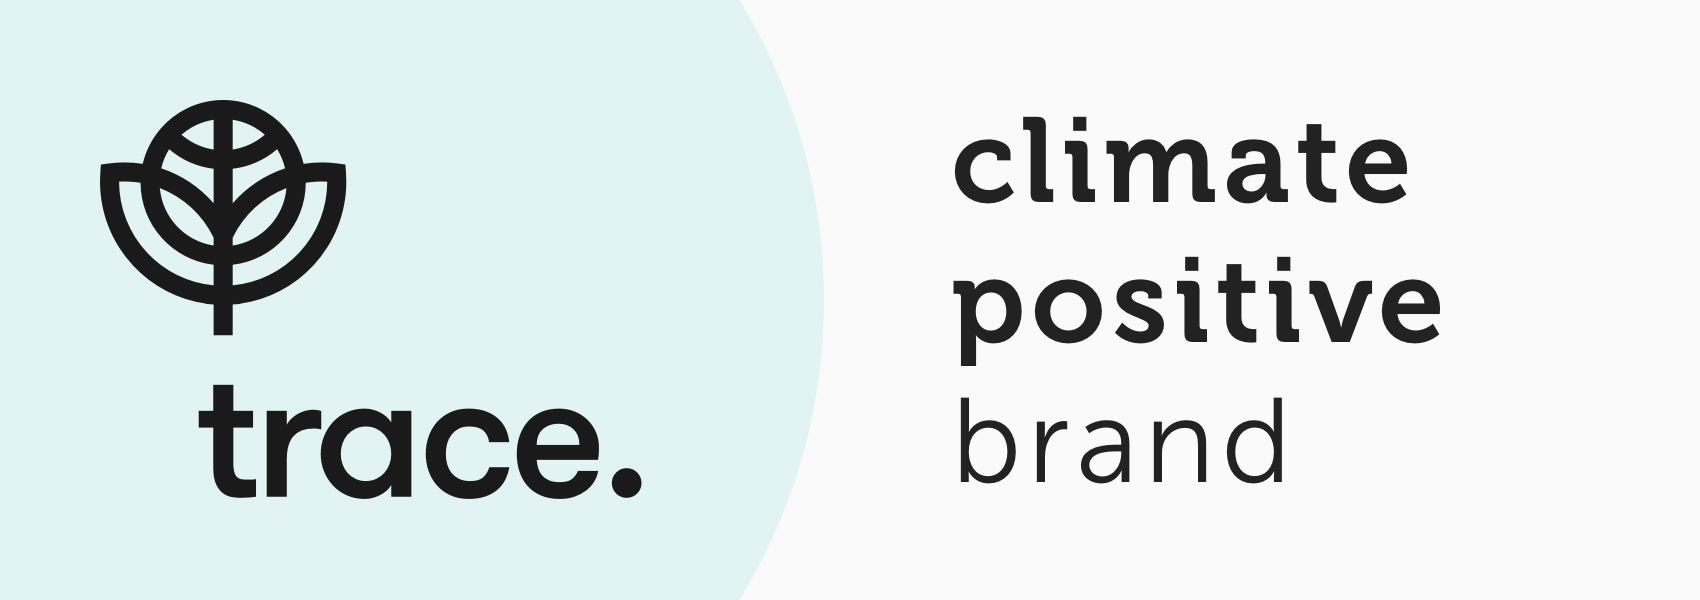 Offset badge - Climate positive brand